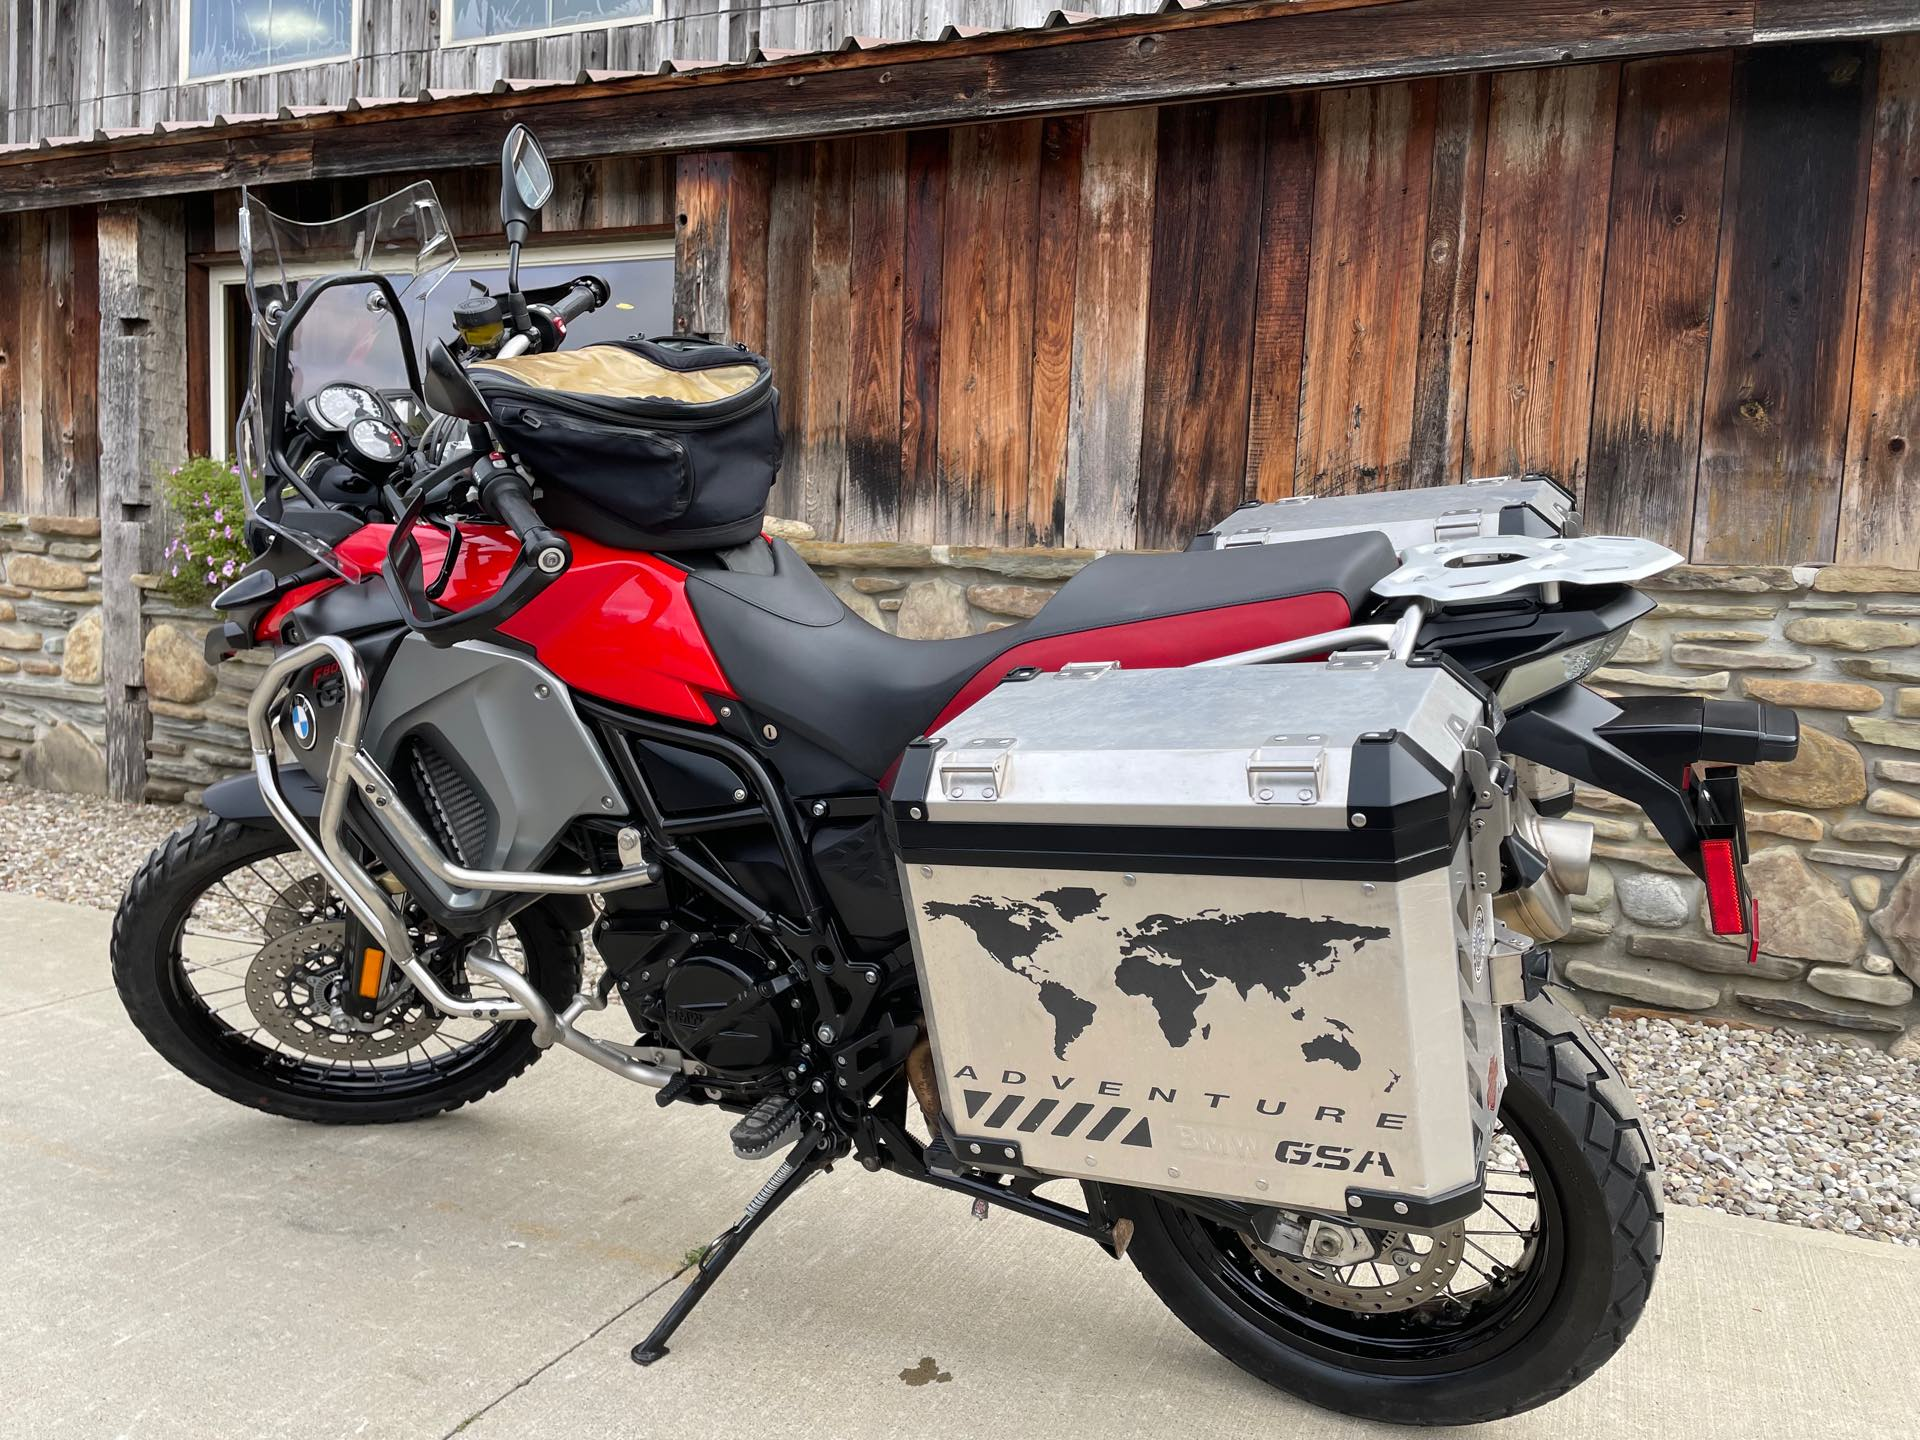 2014 BMW F 800 GS Adventure at Arkport Cycles